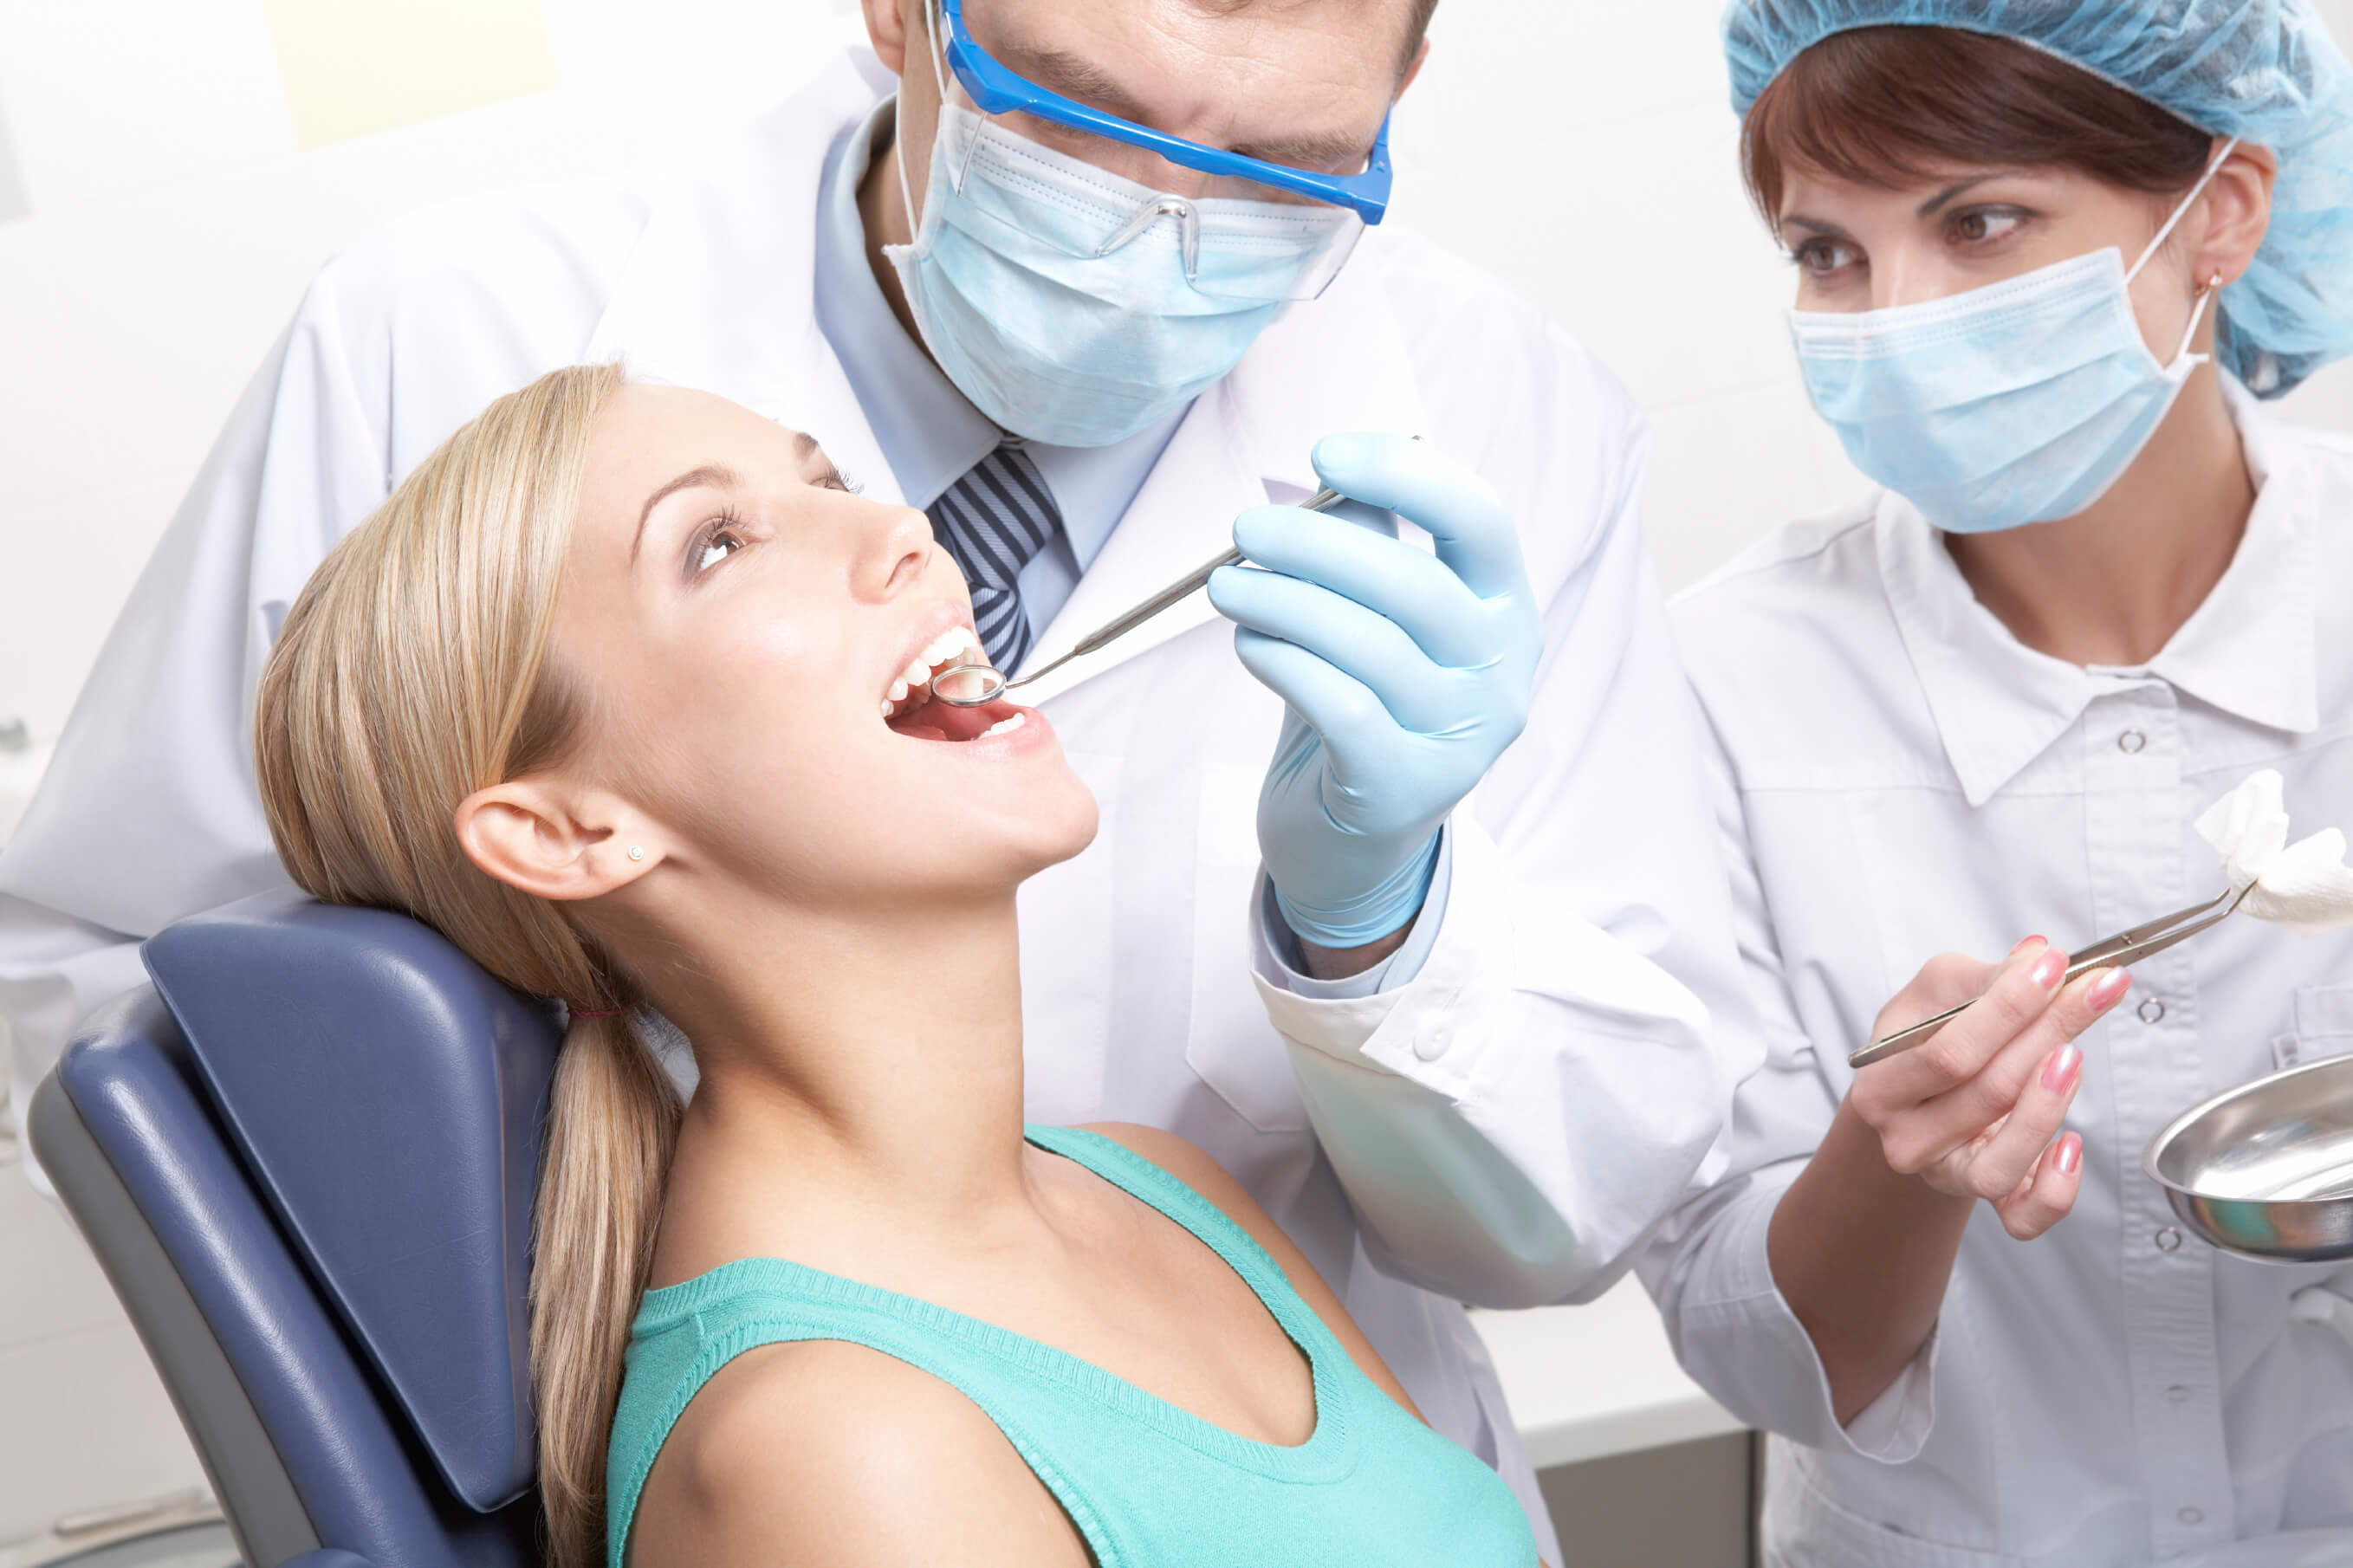 Sedation Dentistry in Thousand Oaks, CA 91362 - Skyline Dental